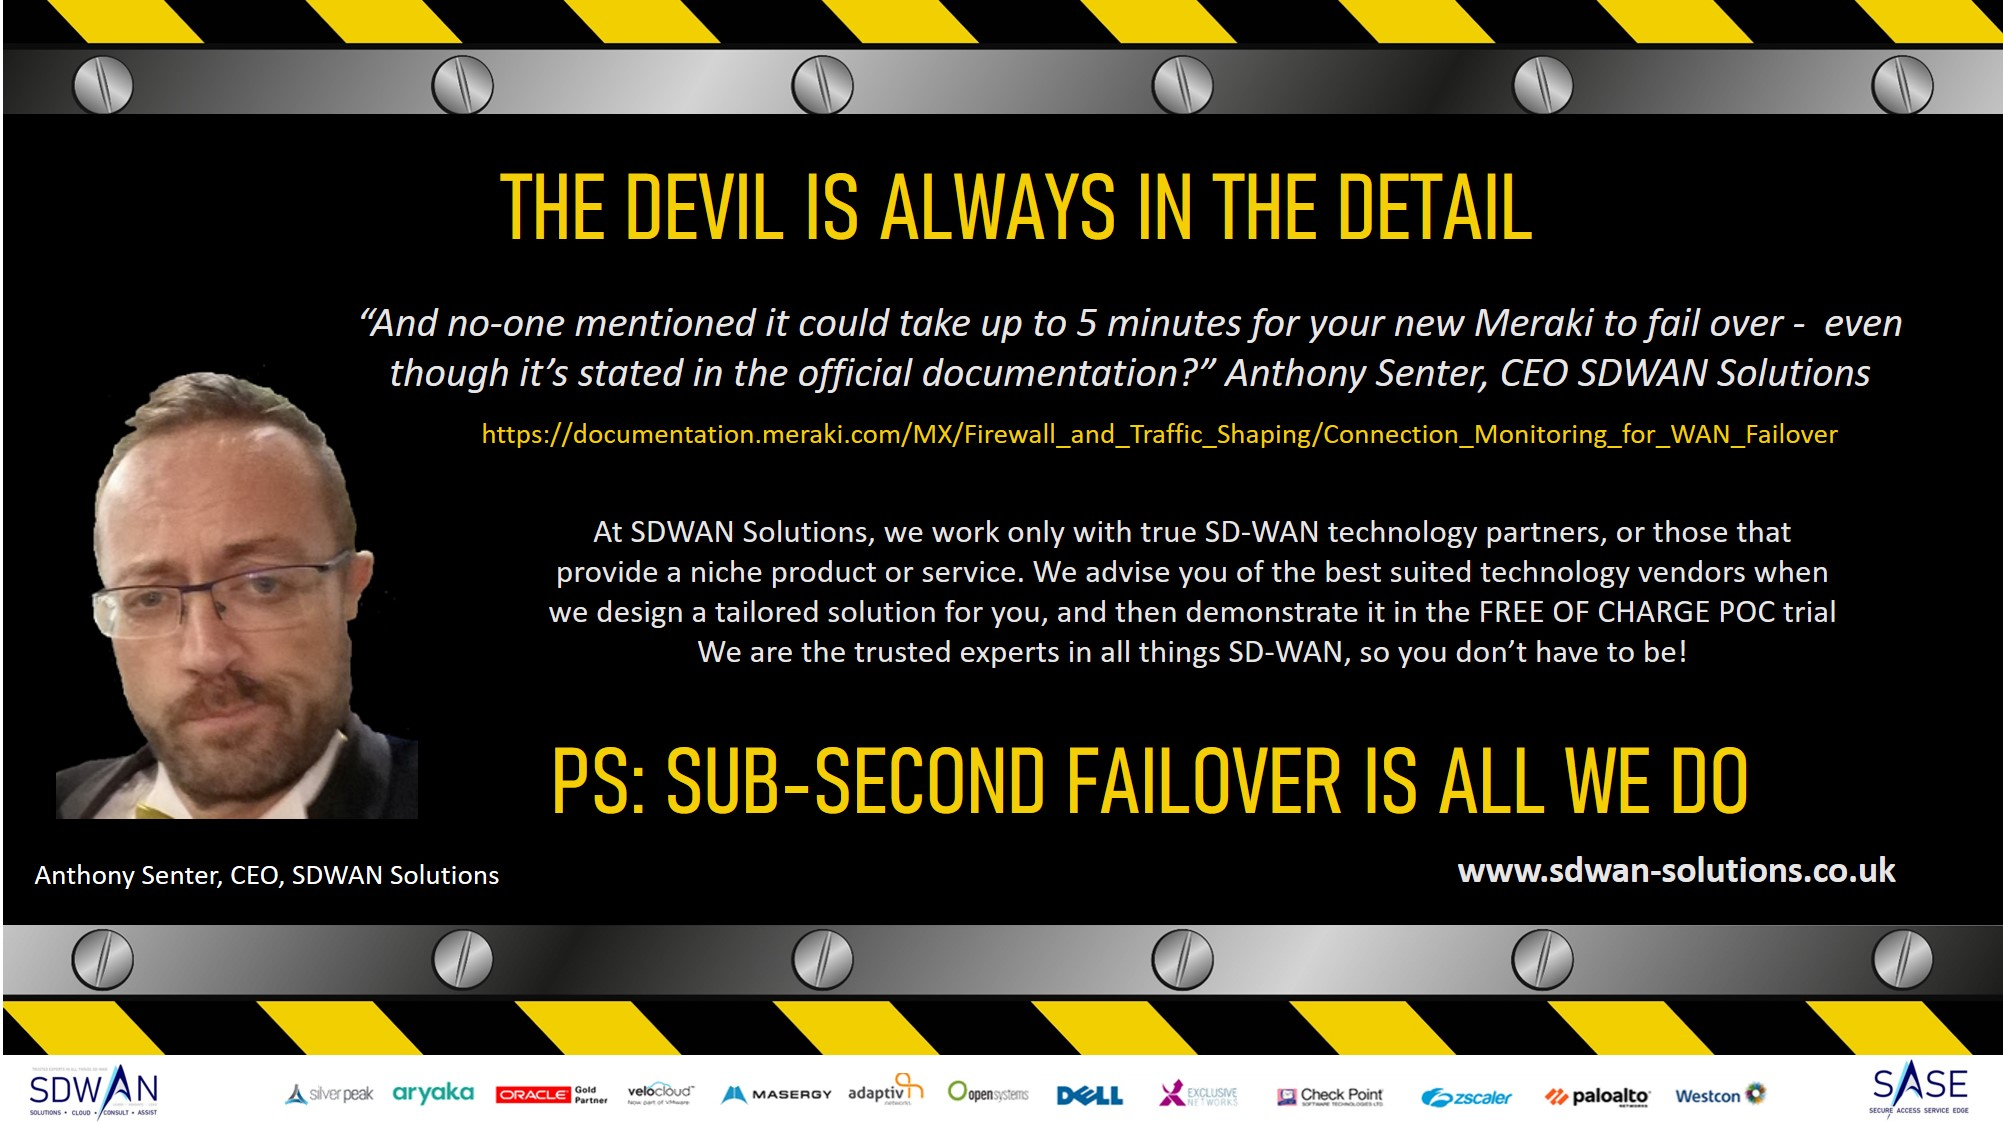 The Devil is in the detail = SD-WAN and SaSe